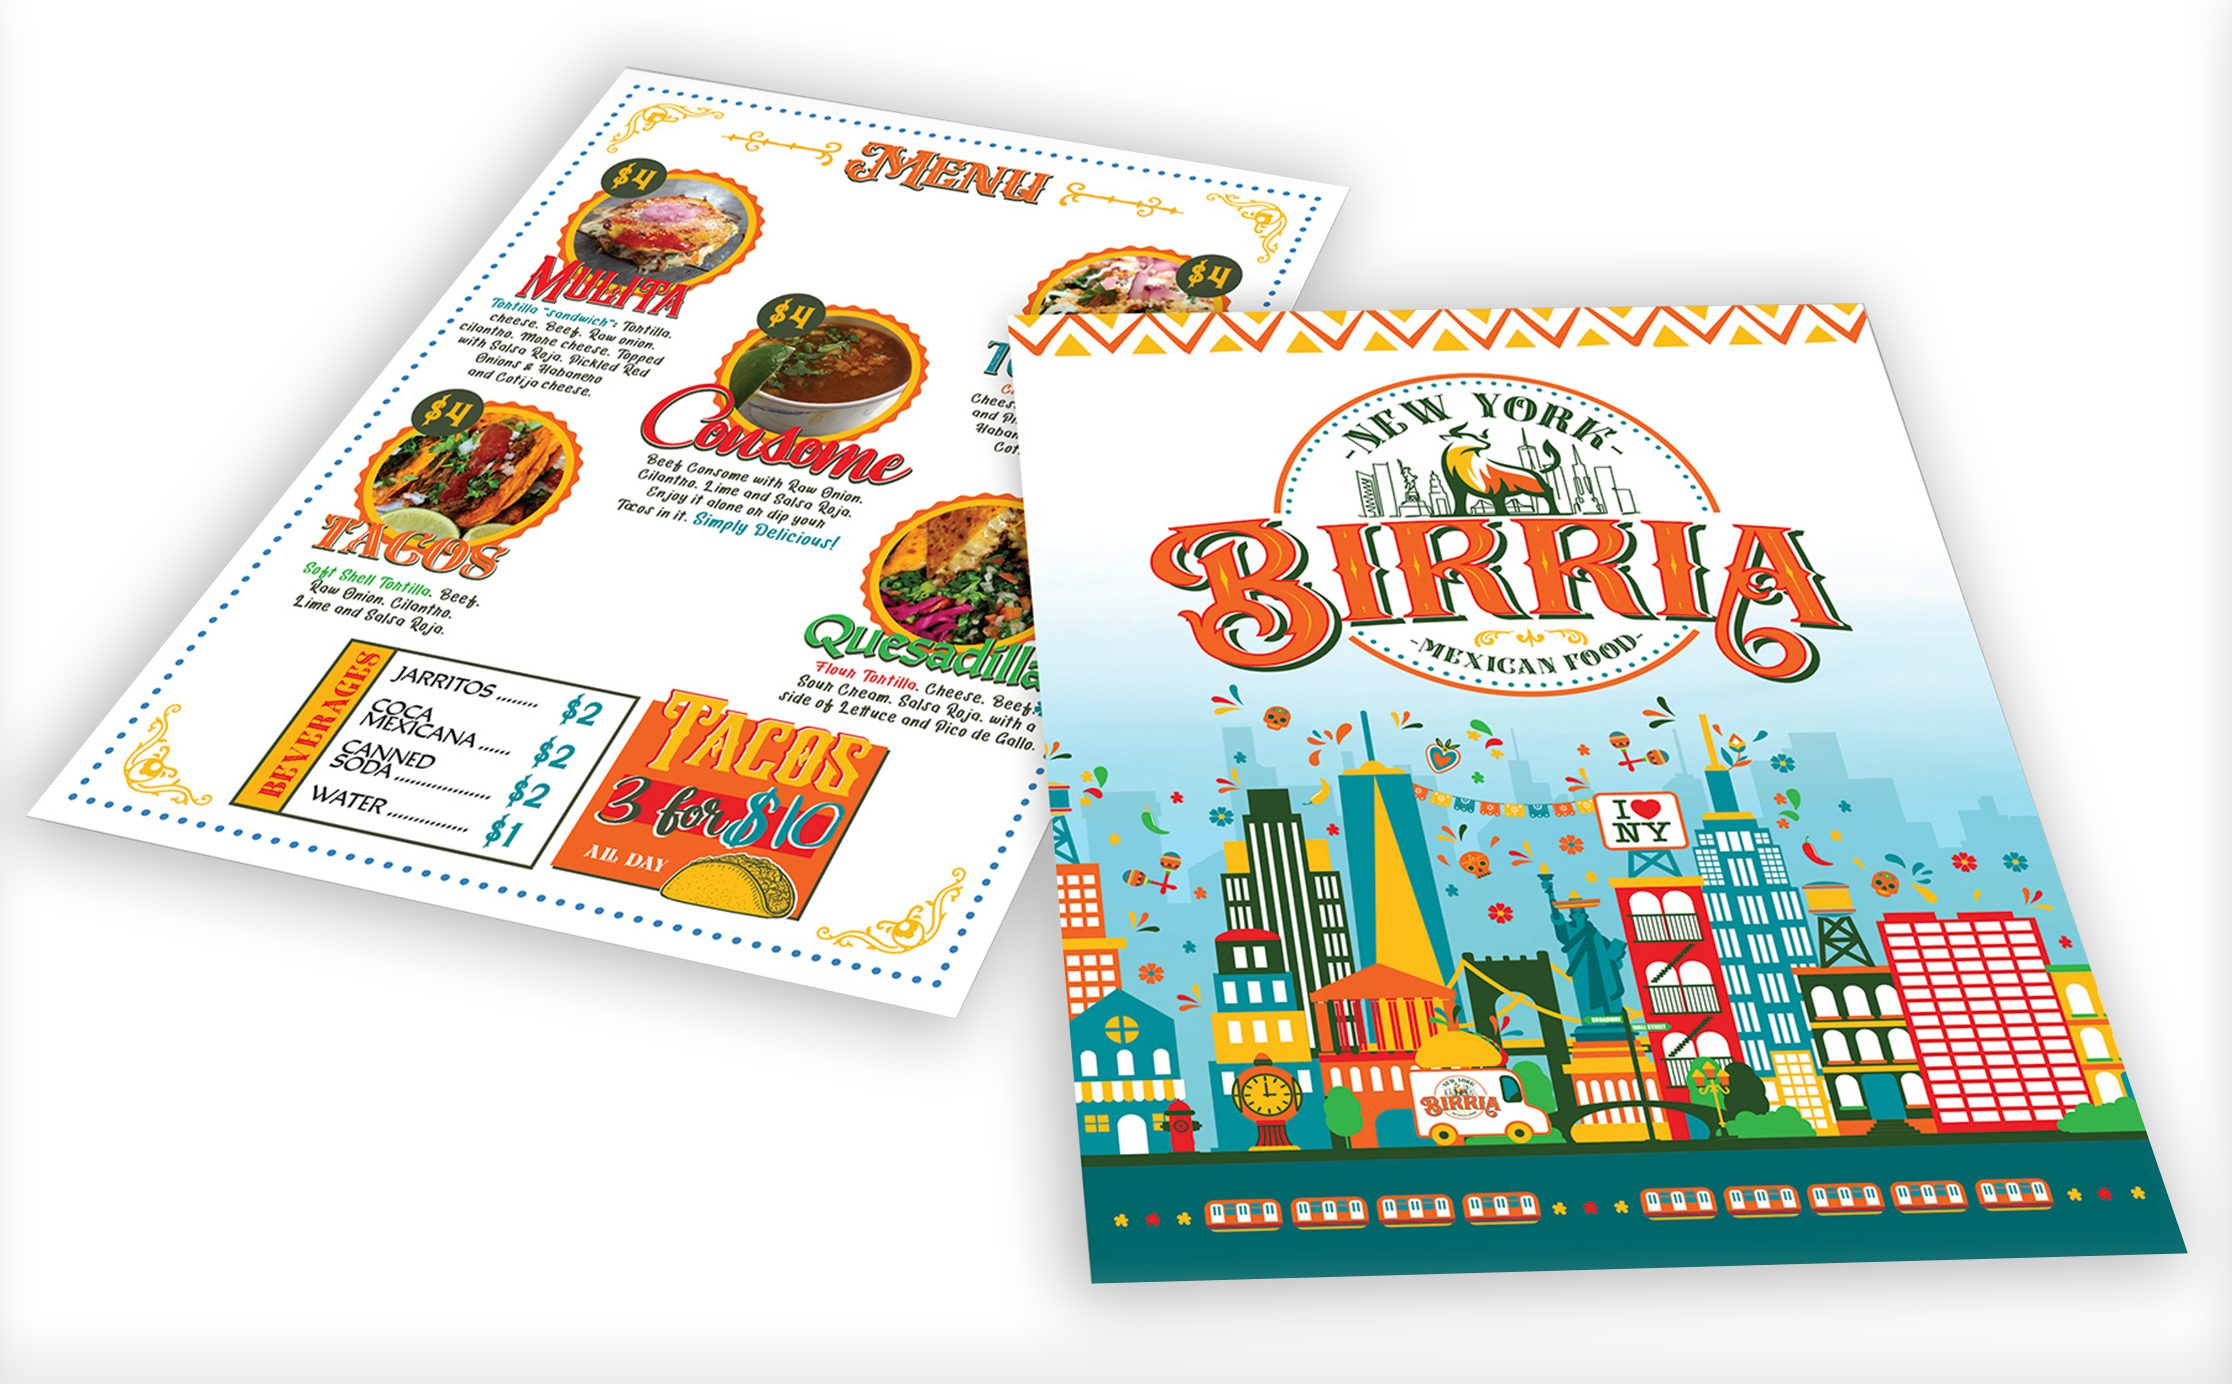 New York Birria Branding & Food Truck